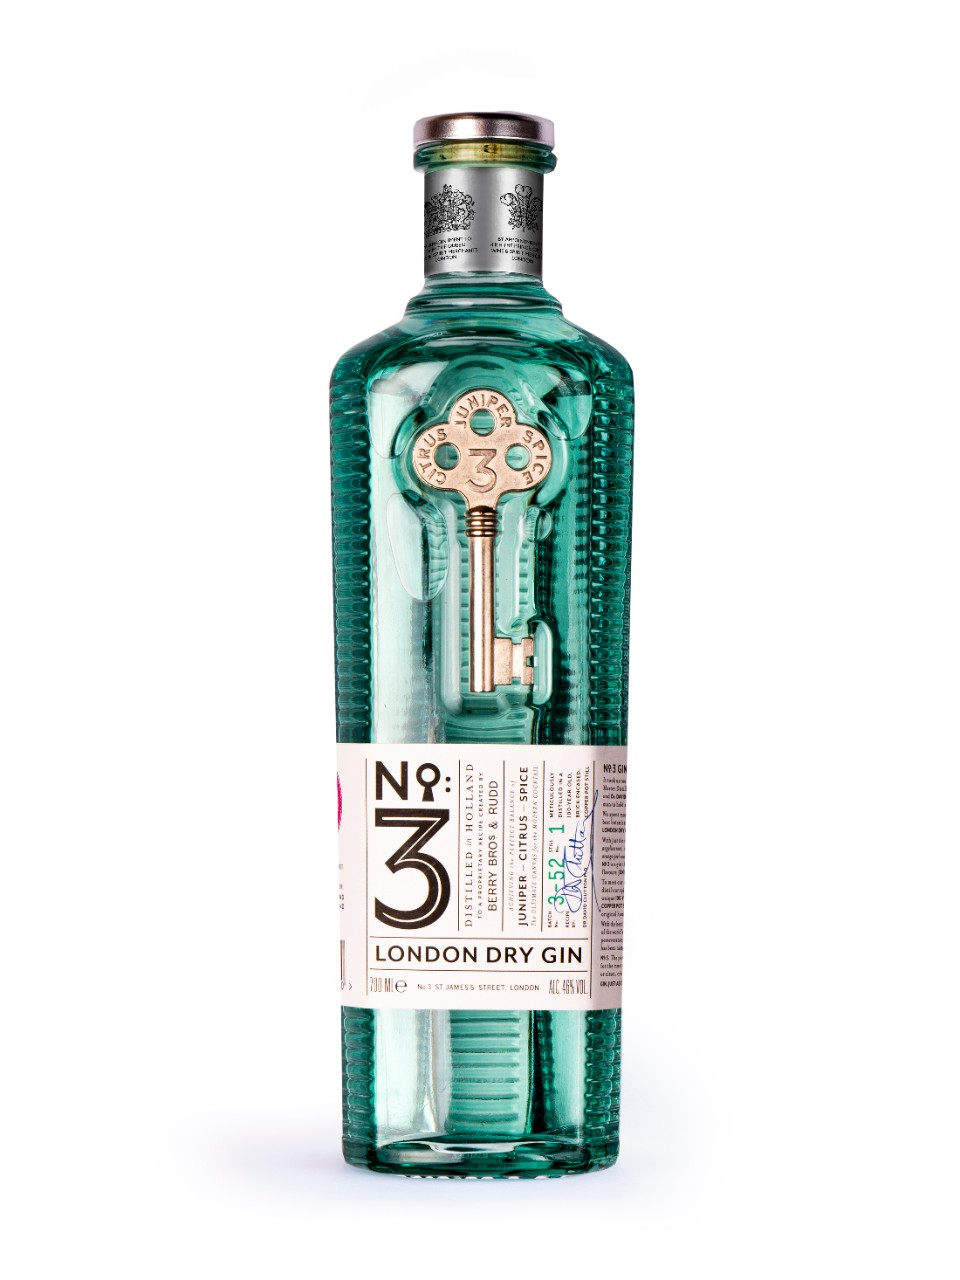 London Dry Gin No. 3